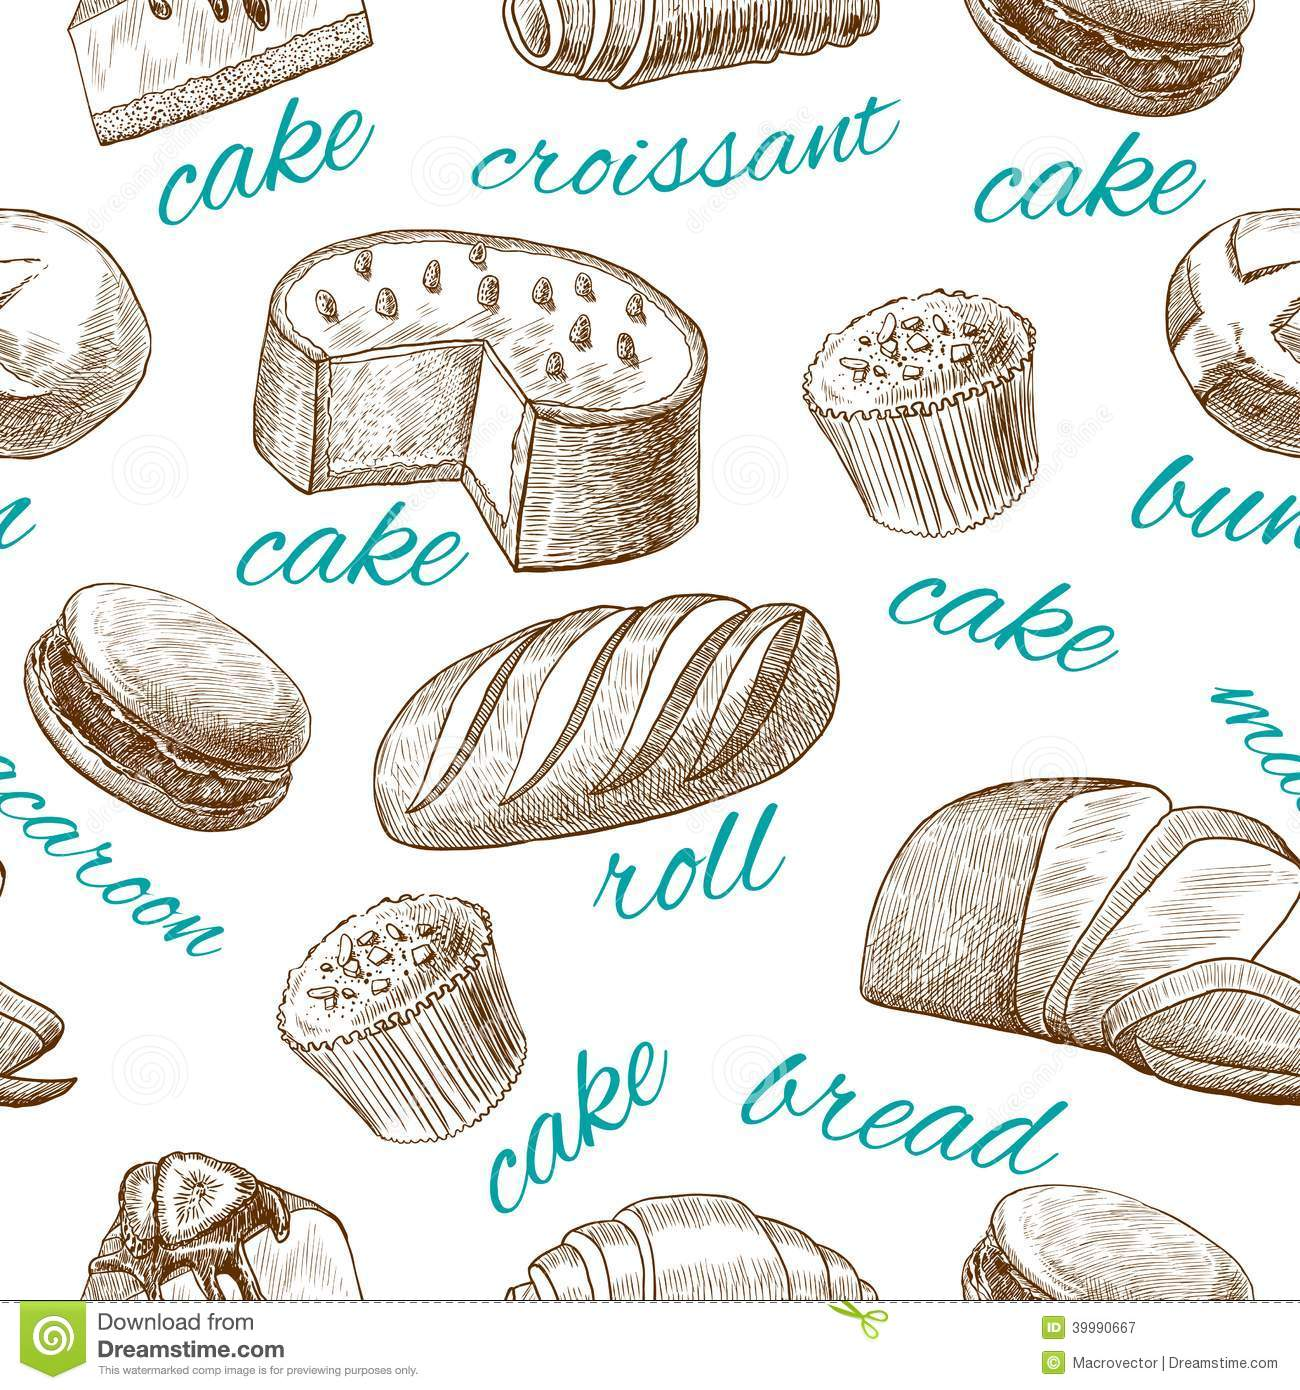 Baking And Pastry essay analysis online